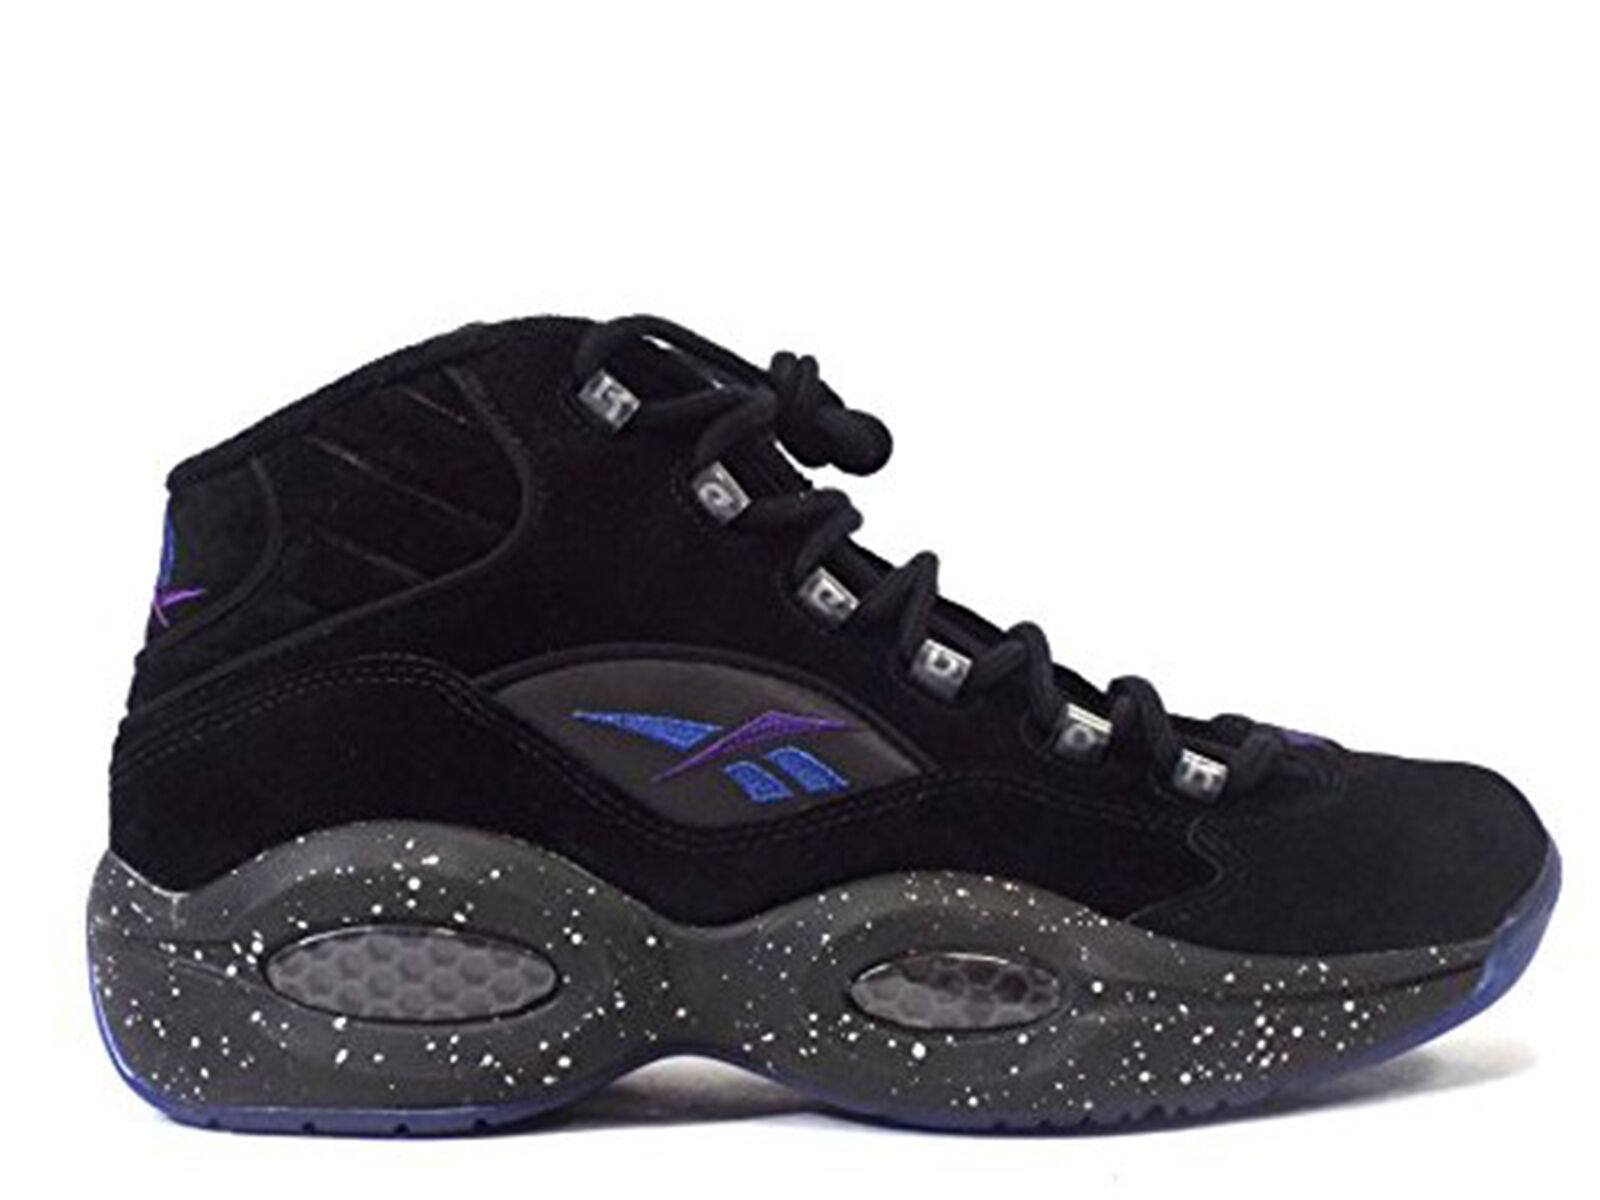 Brand New Reebok Question Mid Token 38 Men's Athletic Fashion Sneakers [V63448]